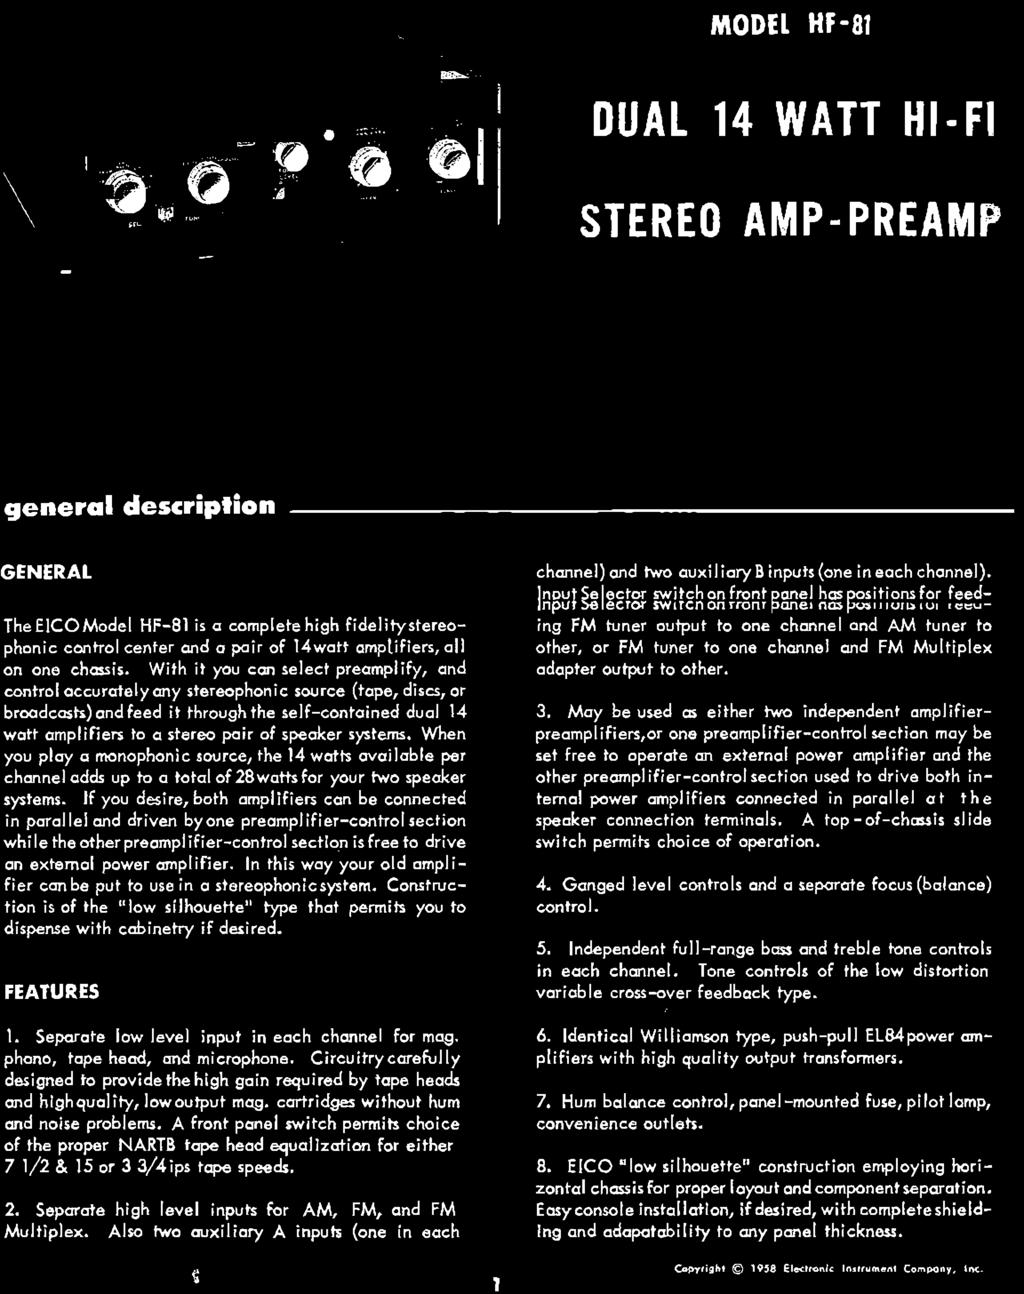 Dual 14 Watt Hi Fi Stereo Amp Preamp General Description Alpine Car Audio Wiring Diagram Alarm 8046 With It You Can Select Preamplify And Control Accuratelyany Stereophonic Source Tape Discs